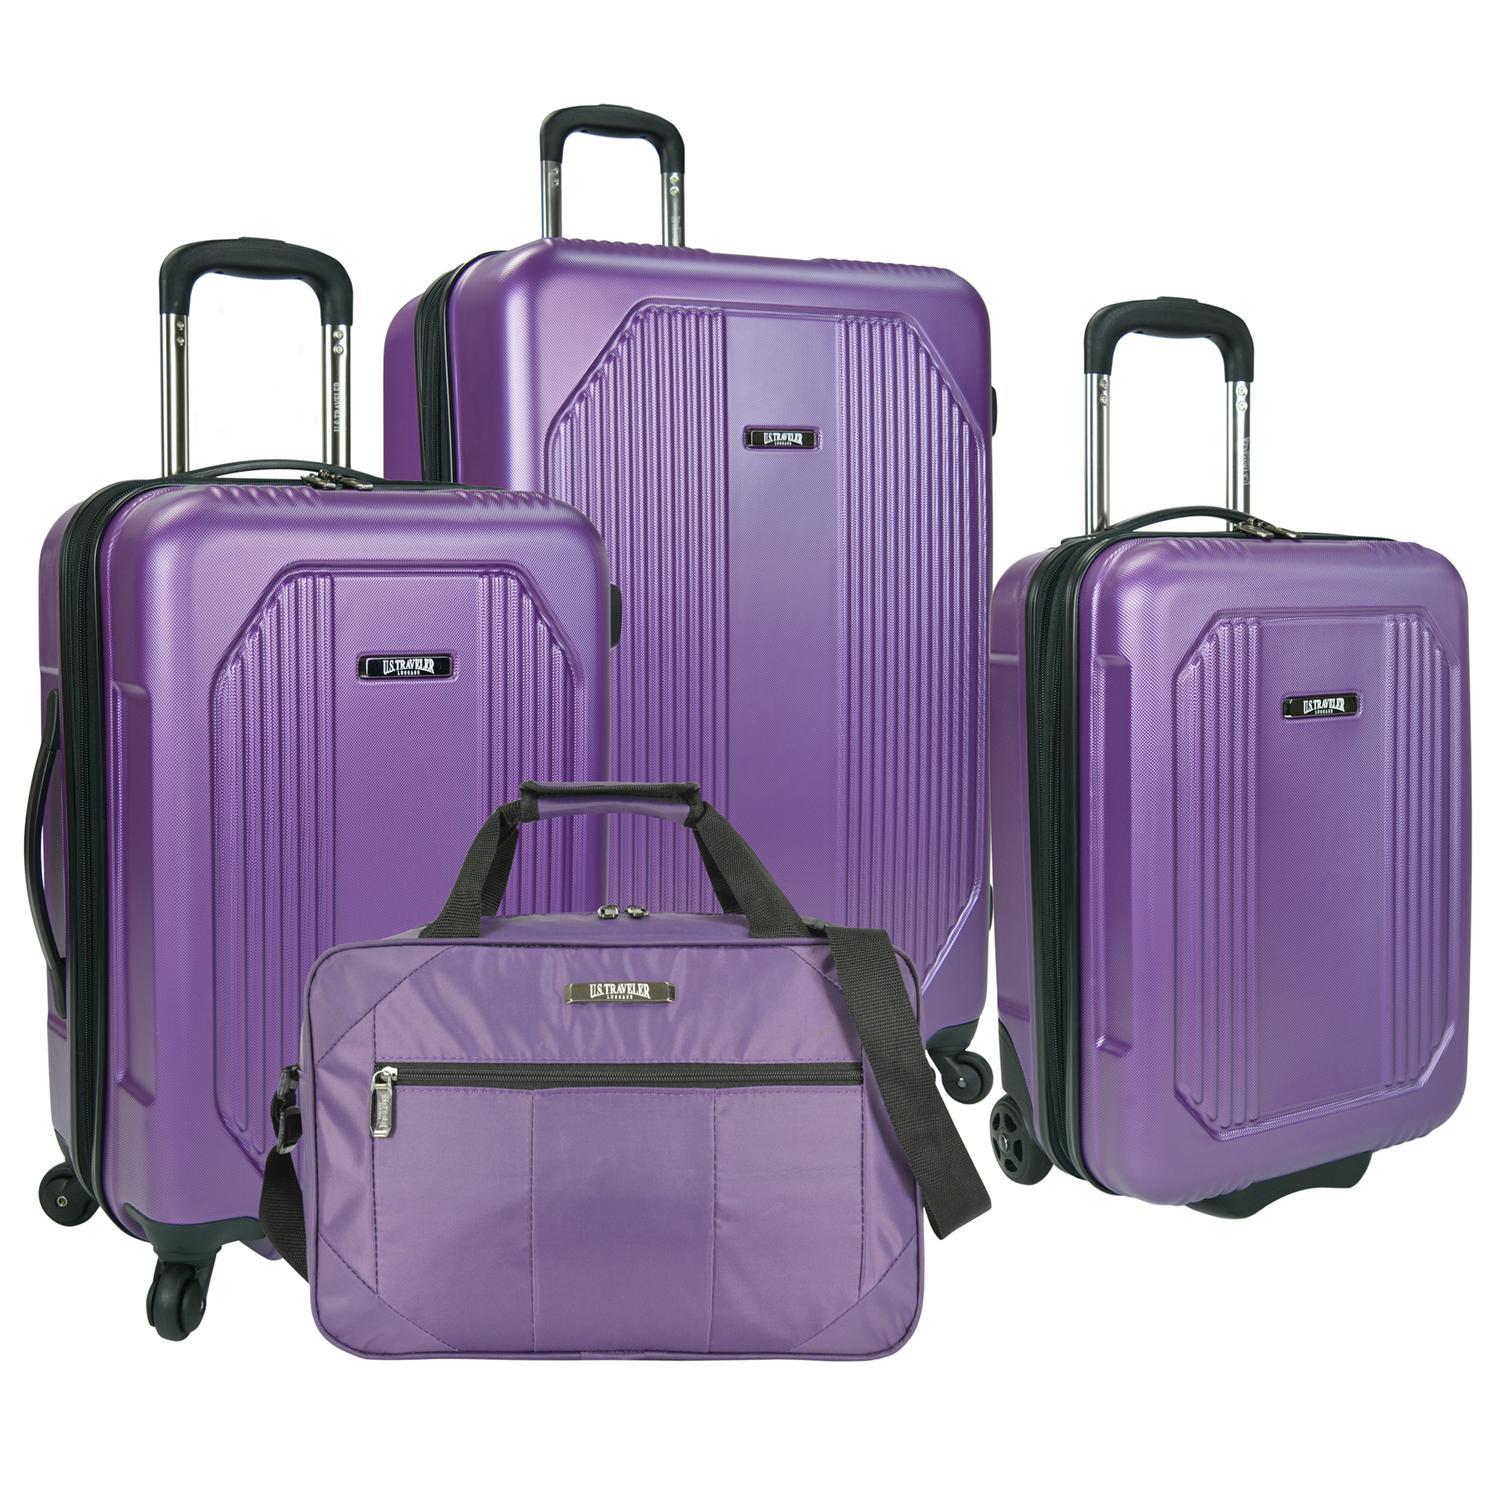 U.S. Traveler Bloomington 4 Piece Luggage Set